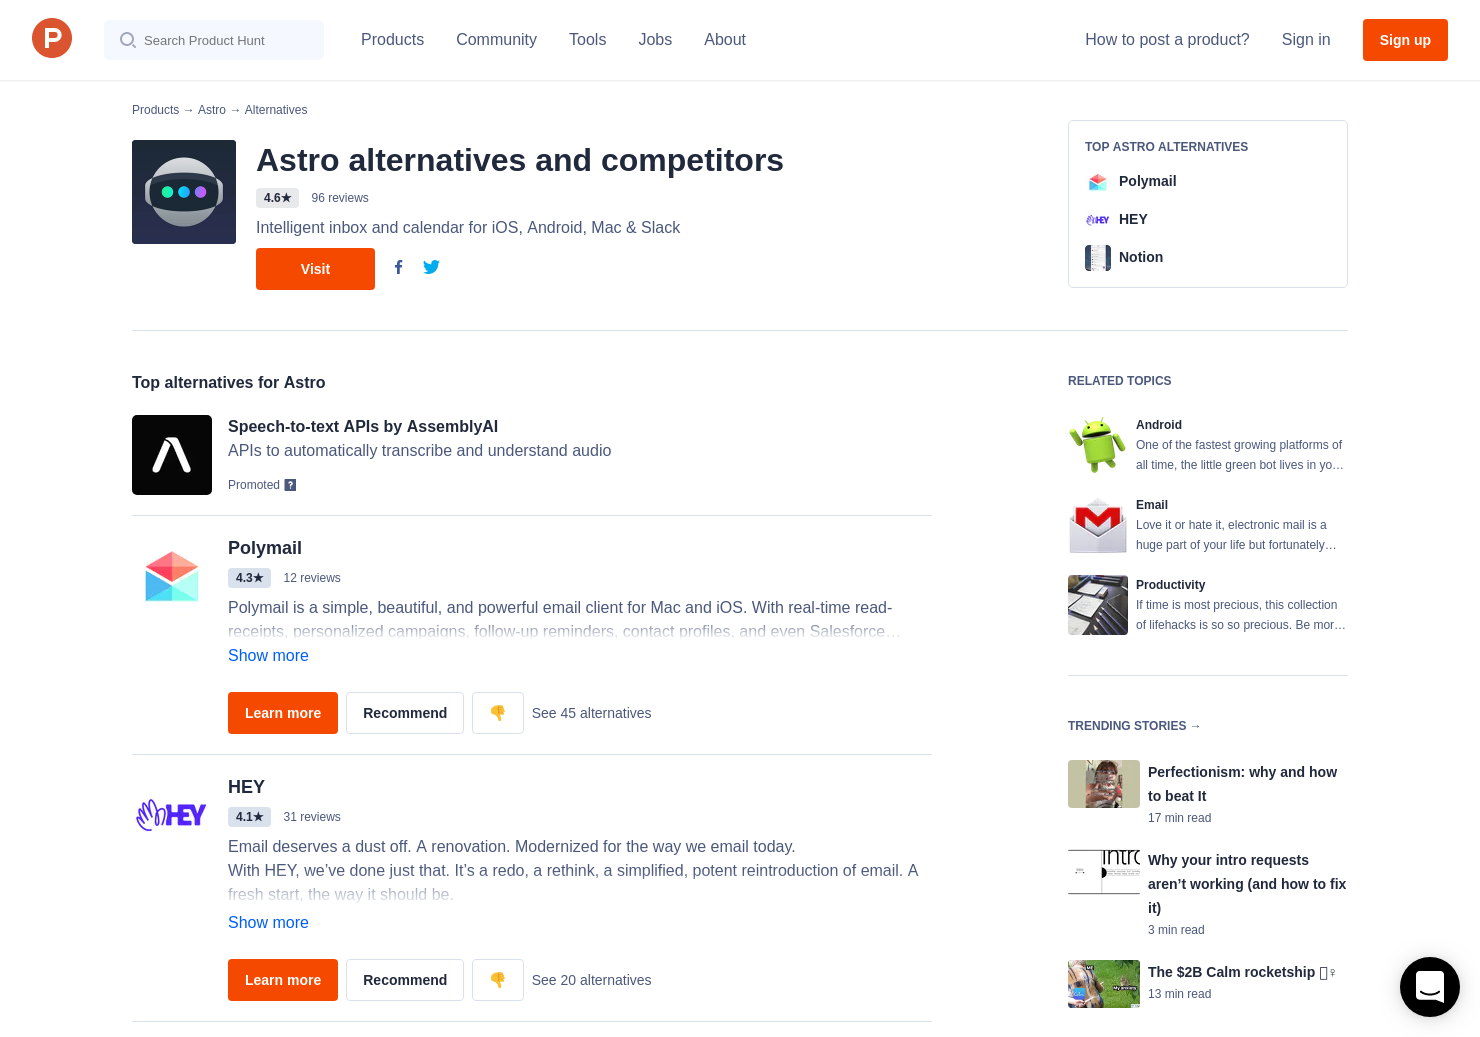 10 Alternatives to Astro for Android, iPhone, iPad, Mac   Product Hunt